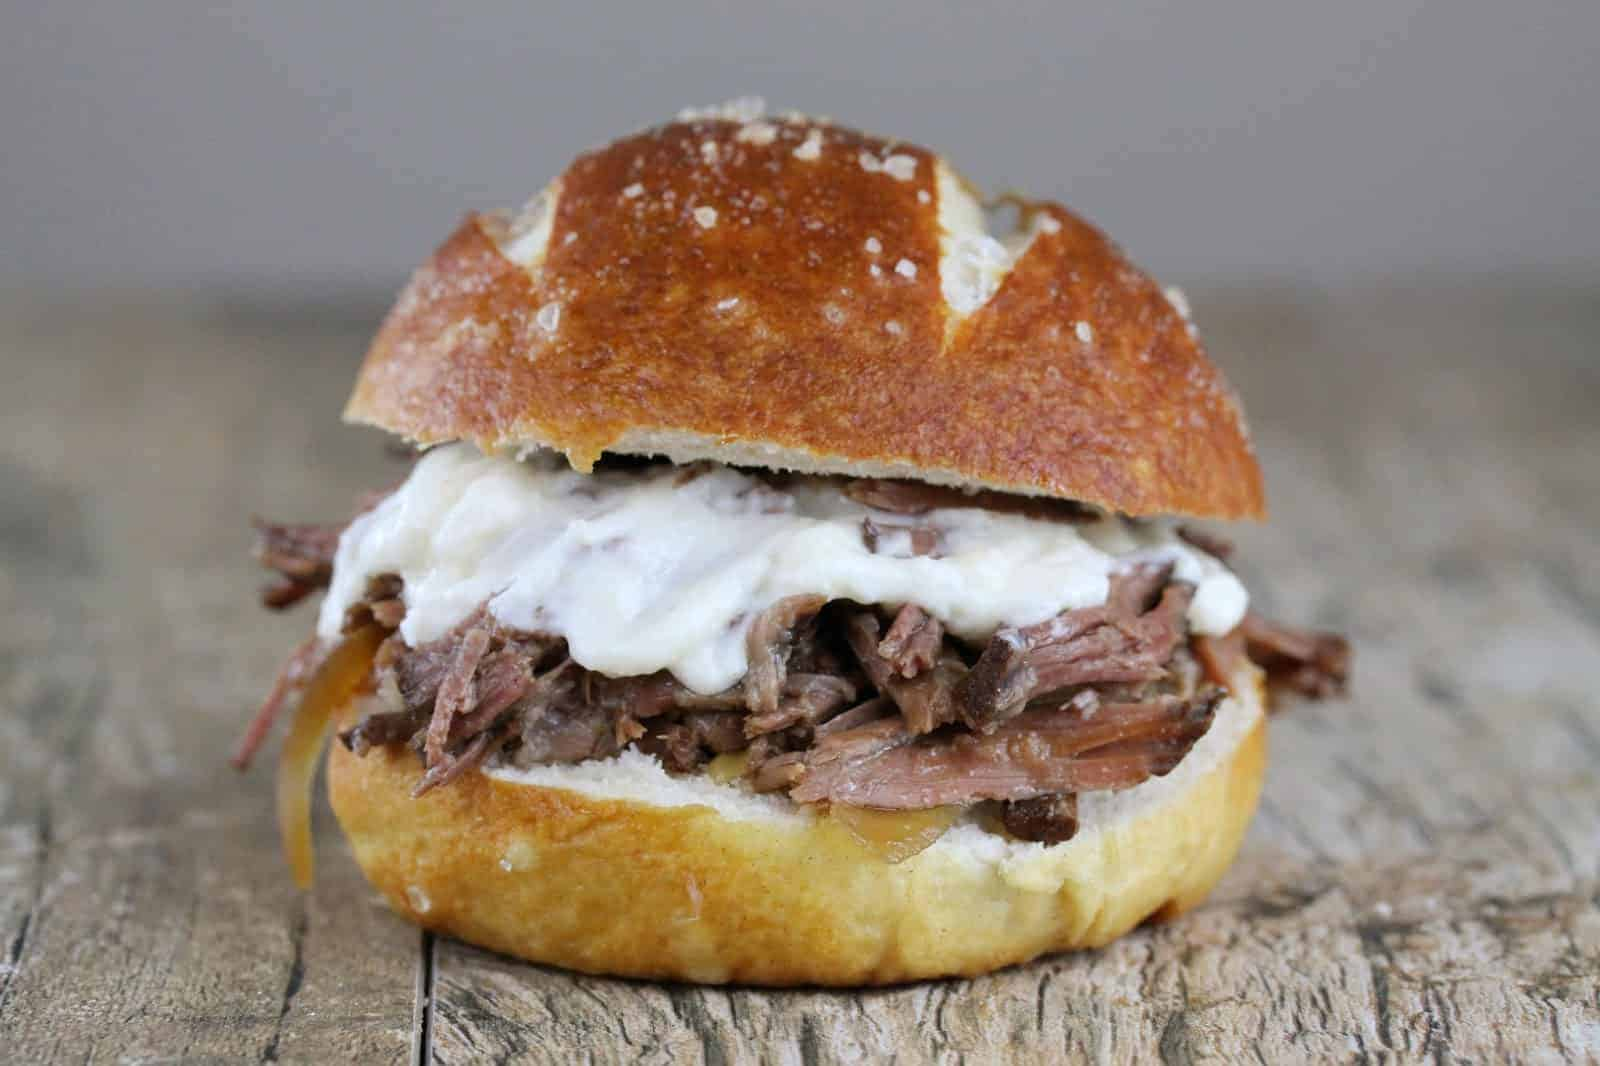 Slow Cooker Beef and horseradish sandwich with cheese on a woodentable.